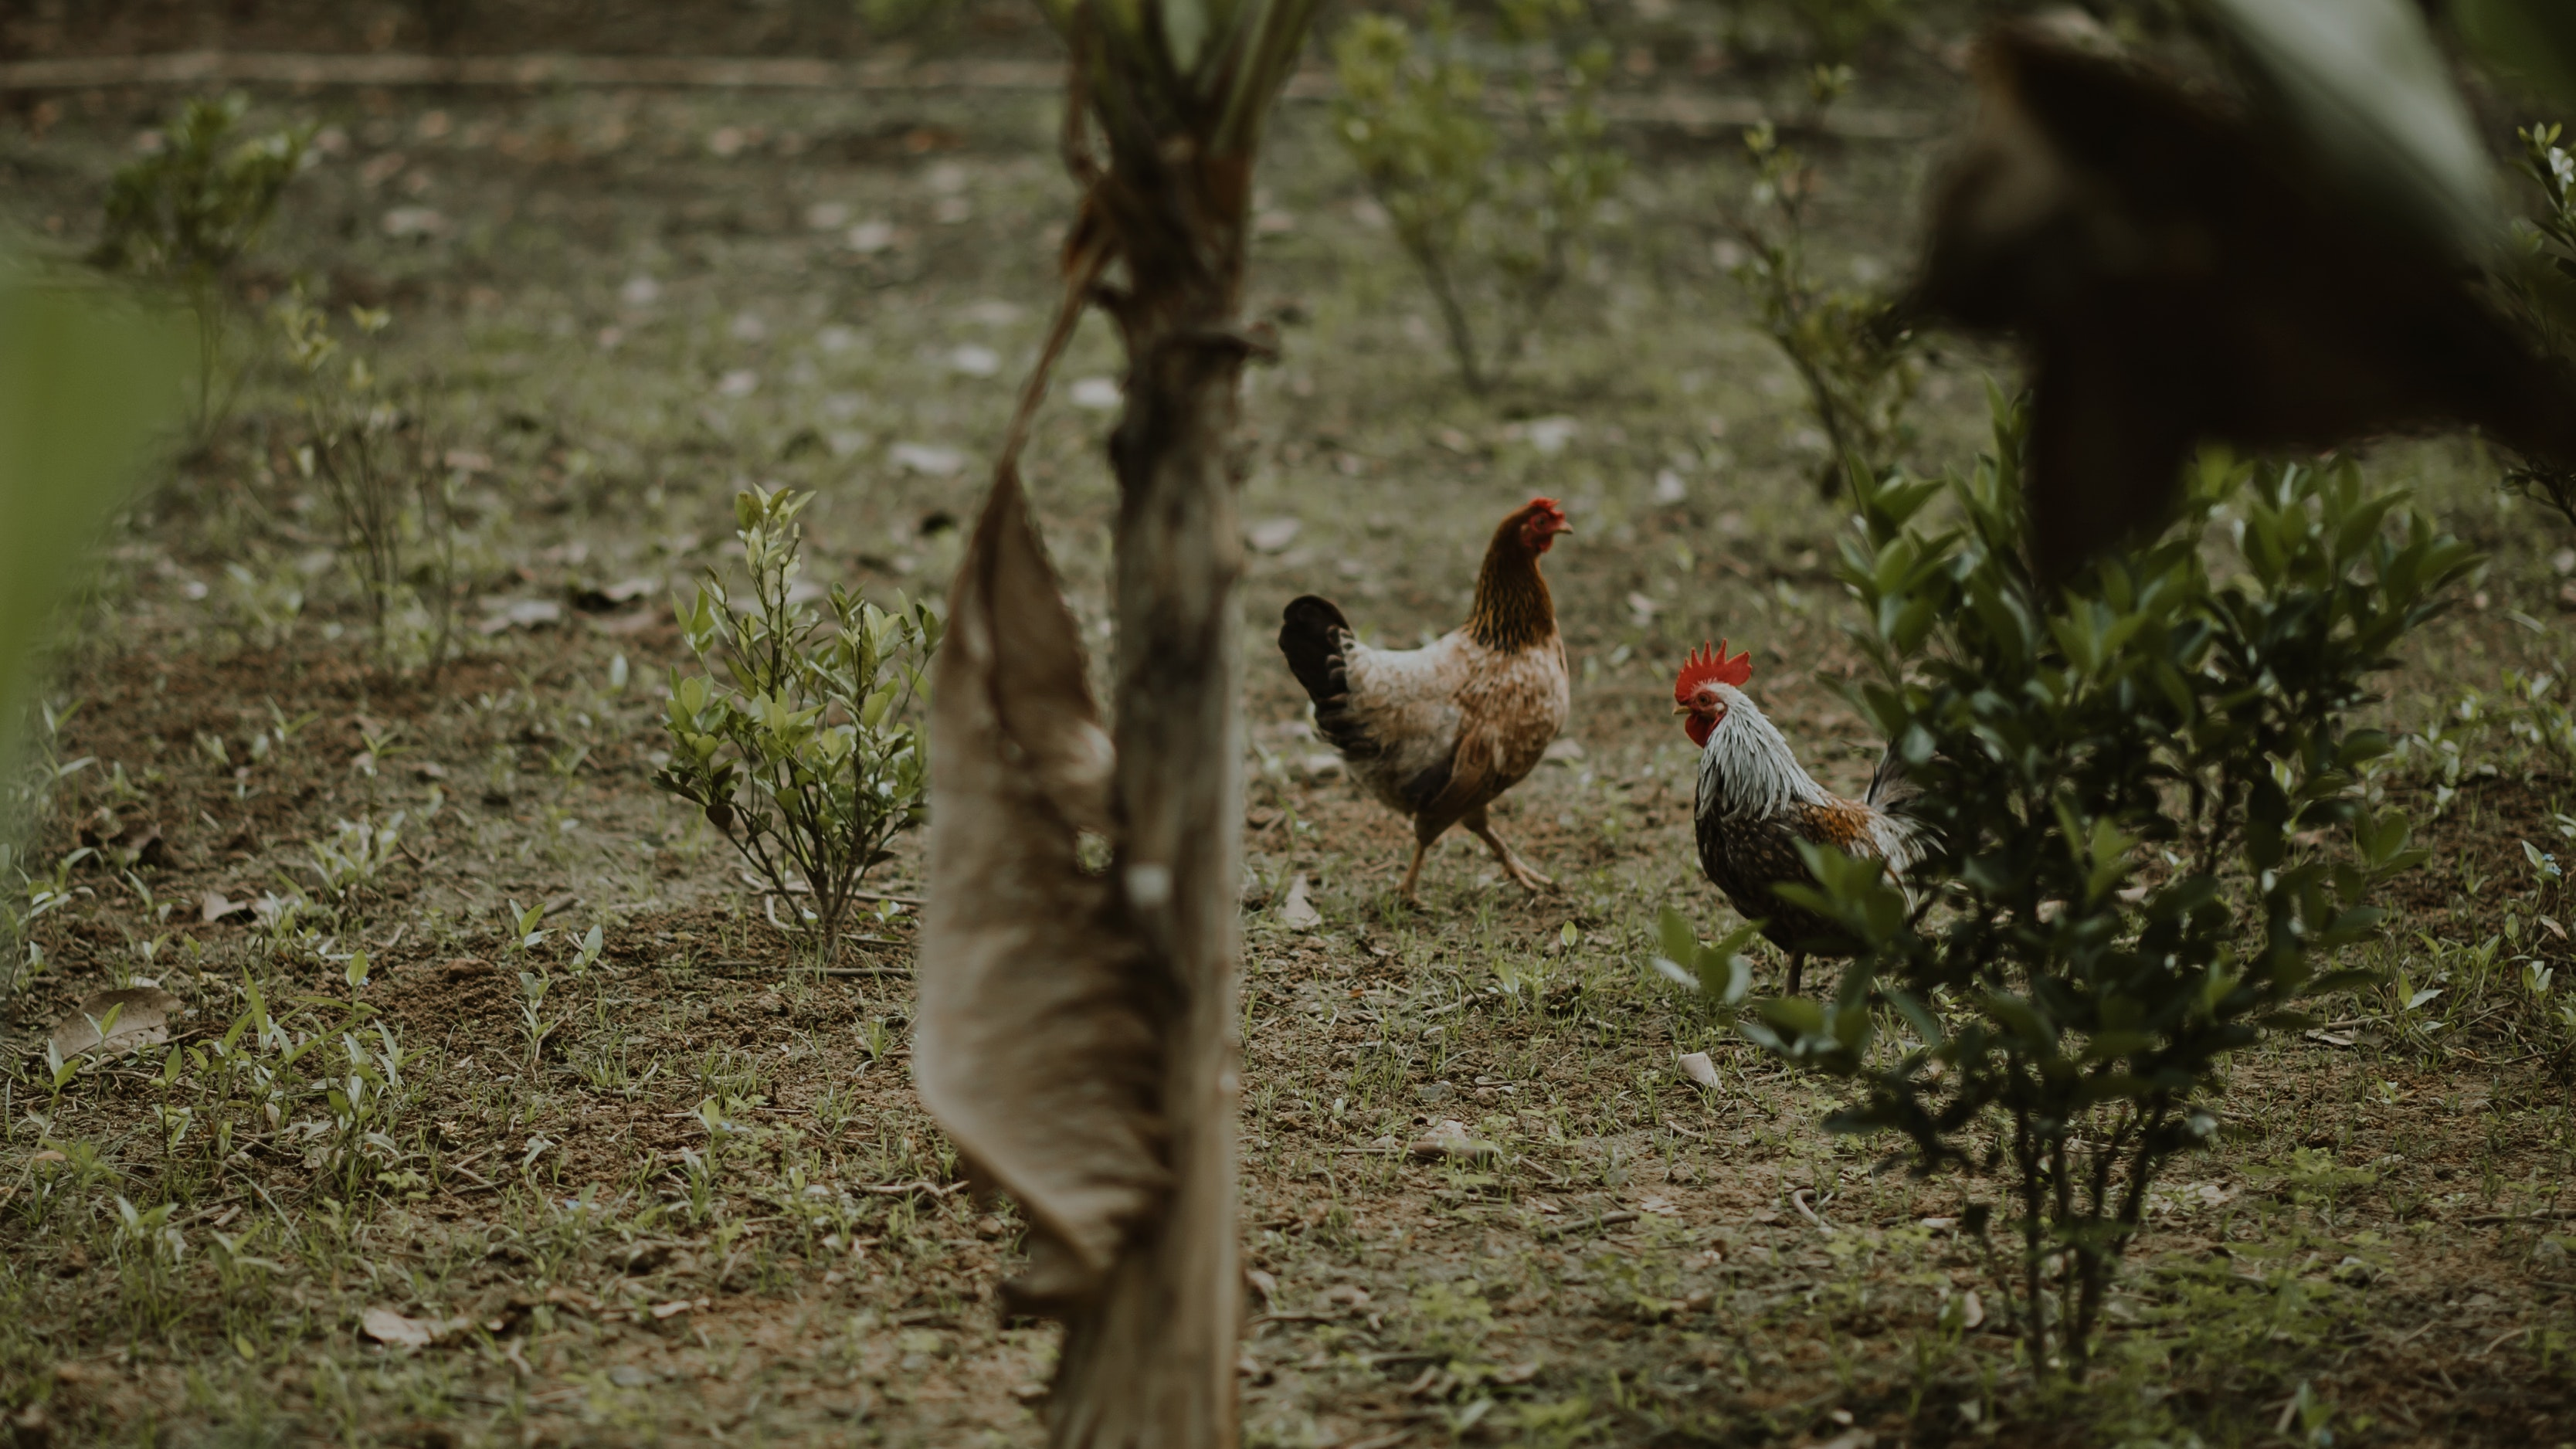 Two brown hen and white rooster standing near green plants photo